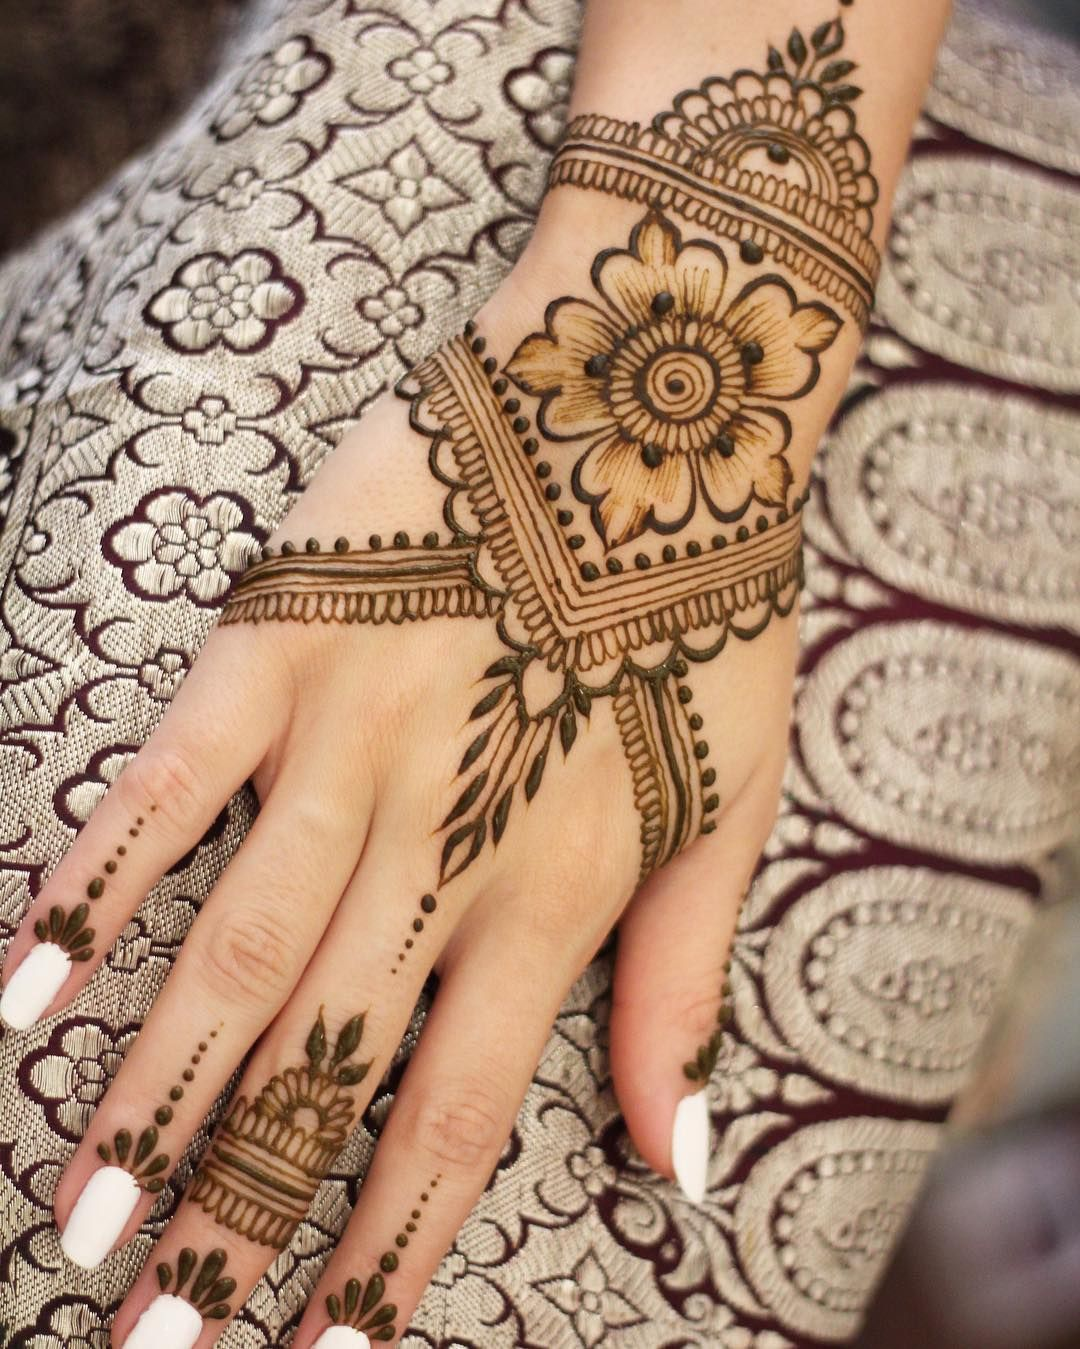 Less Is More A Mehndi For Prom Mehndi Hennatattoo Henna Mehndidesign Hennadesign Hennaart Mehndiofi Henna Tattoo Designs Mehndi Designs Henna Tattoo